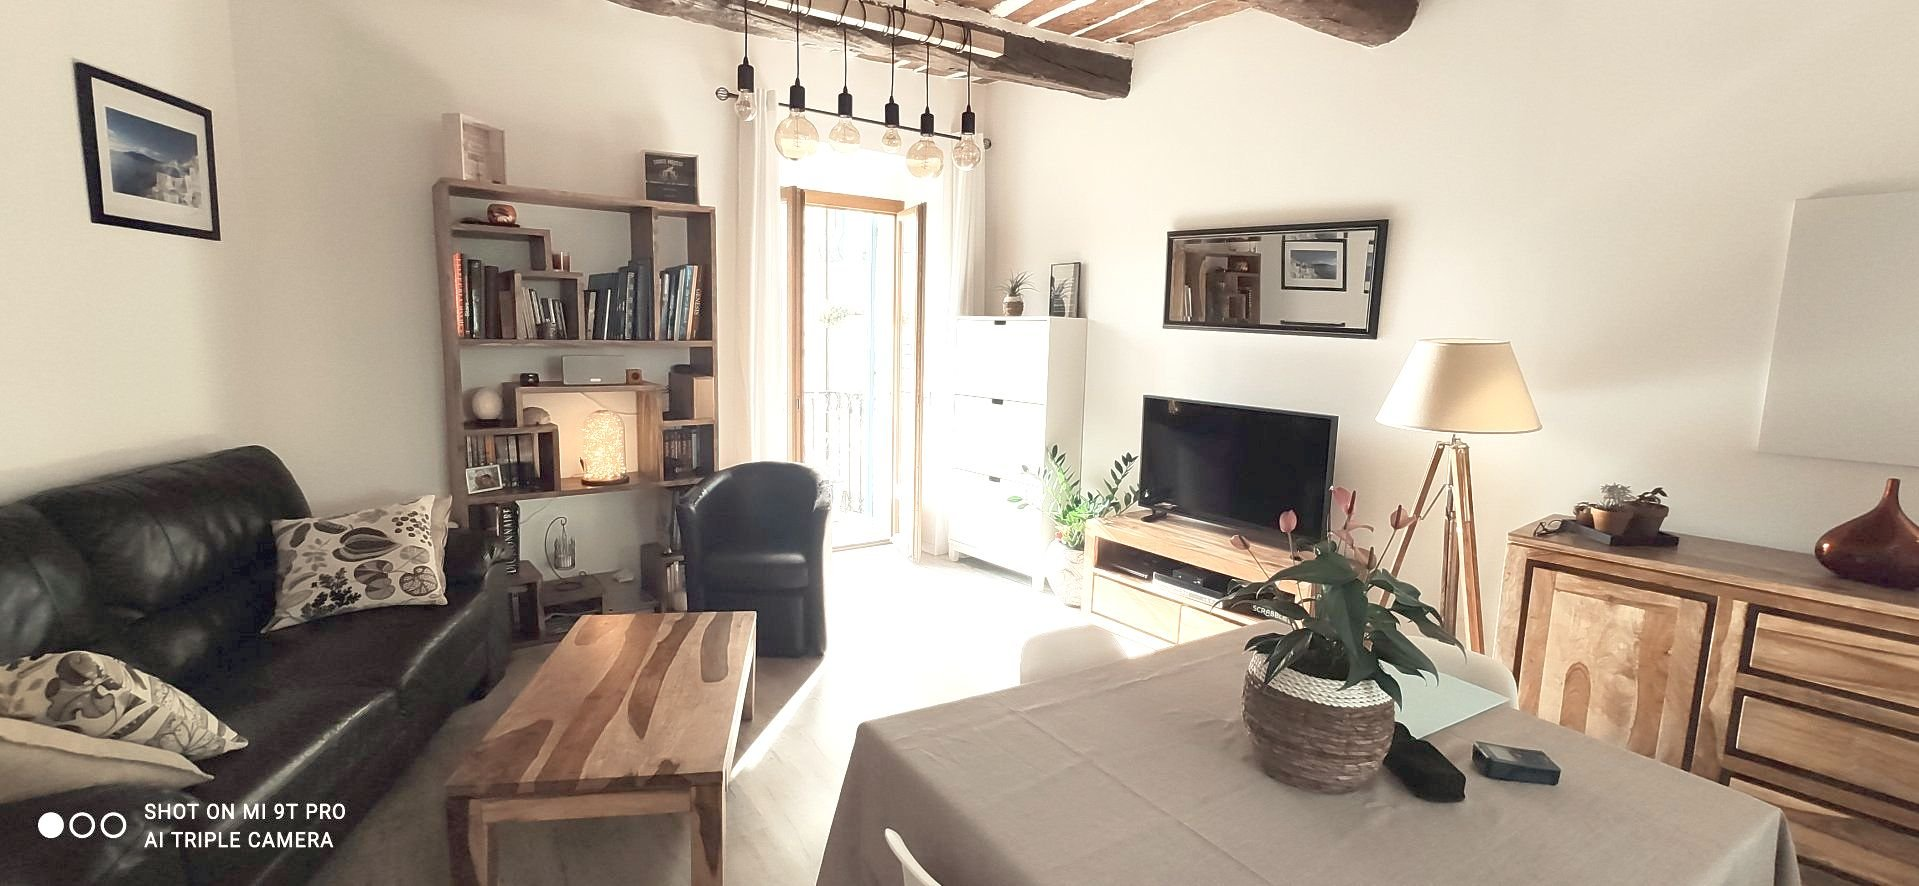 EXCLUSIVITE - Maison de village - Villeneuve-Loubet